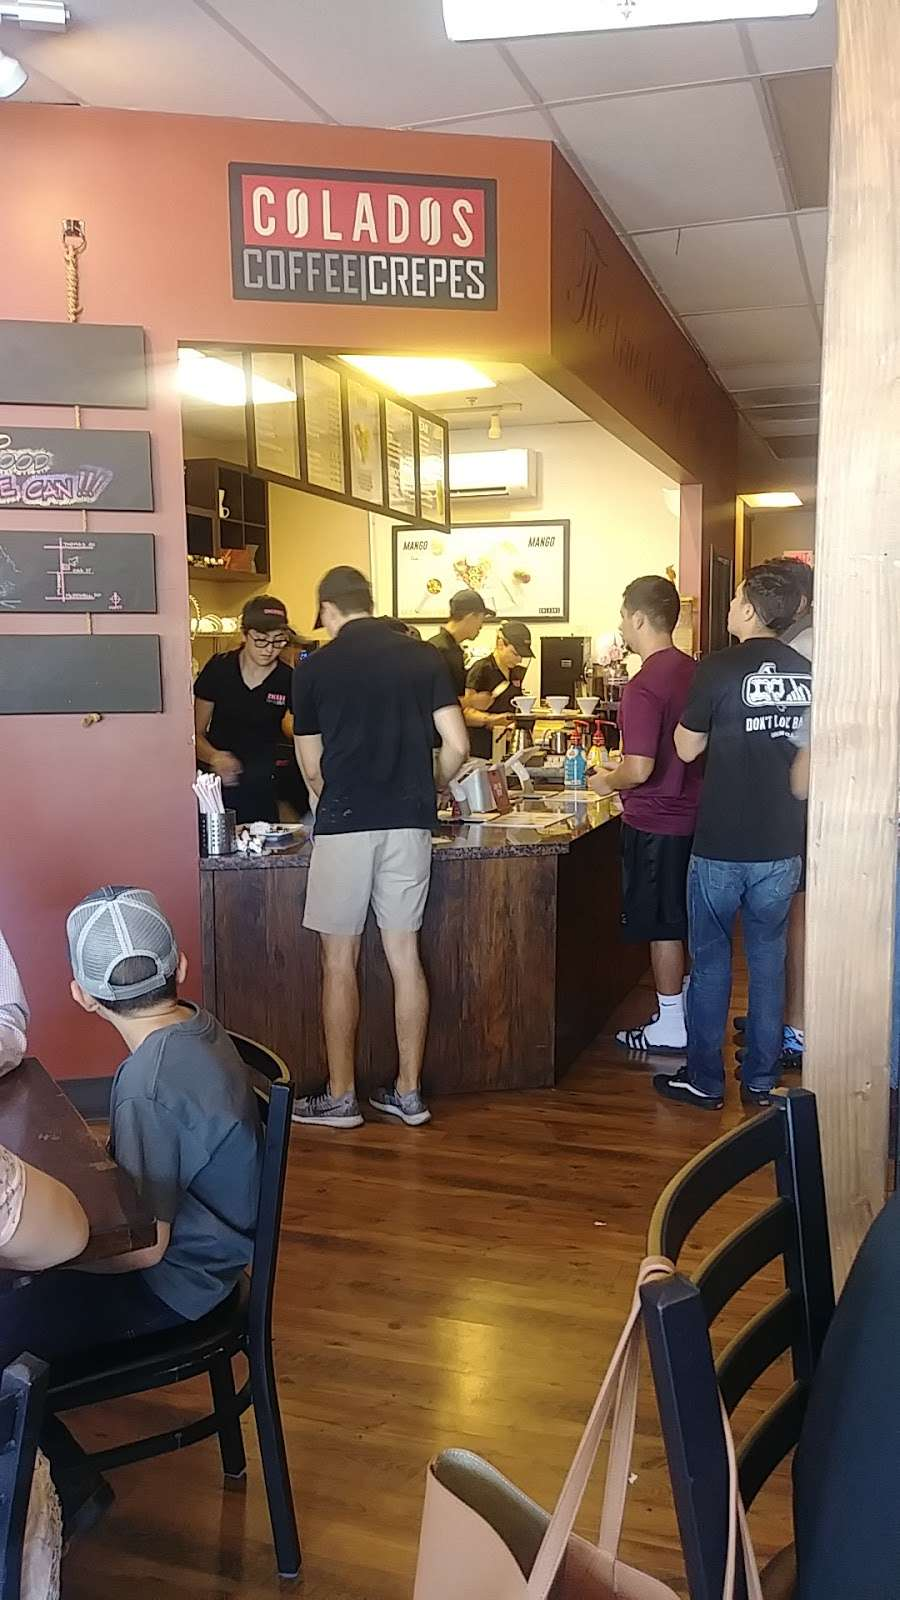 Colados Coffee & Crepes - cafe    Photo 3 of 9   Address: 10685 W Indian School Rd Suite G, Avondale, AZ 85392, USA   Phone: (623) 215-3826